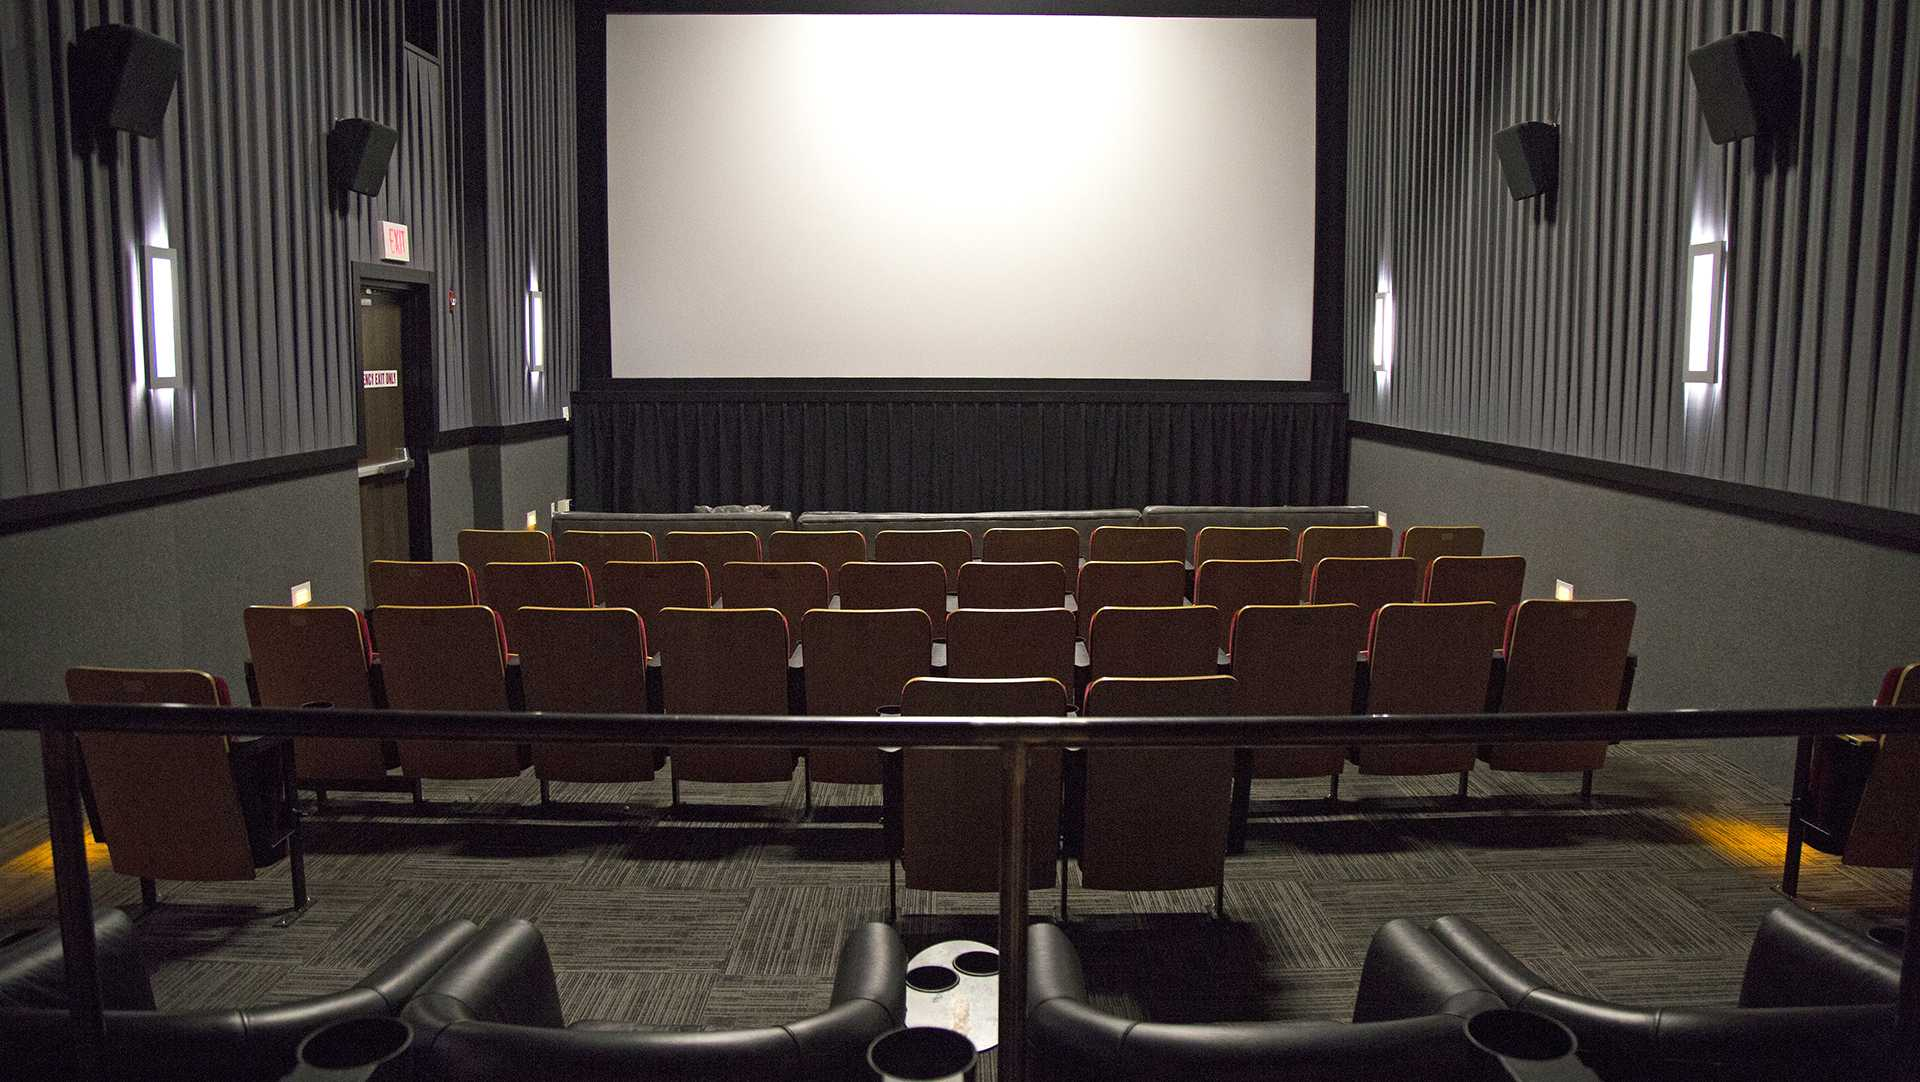 Bijou Open Screen will showcase amateur and student films this weekend